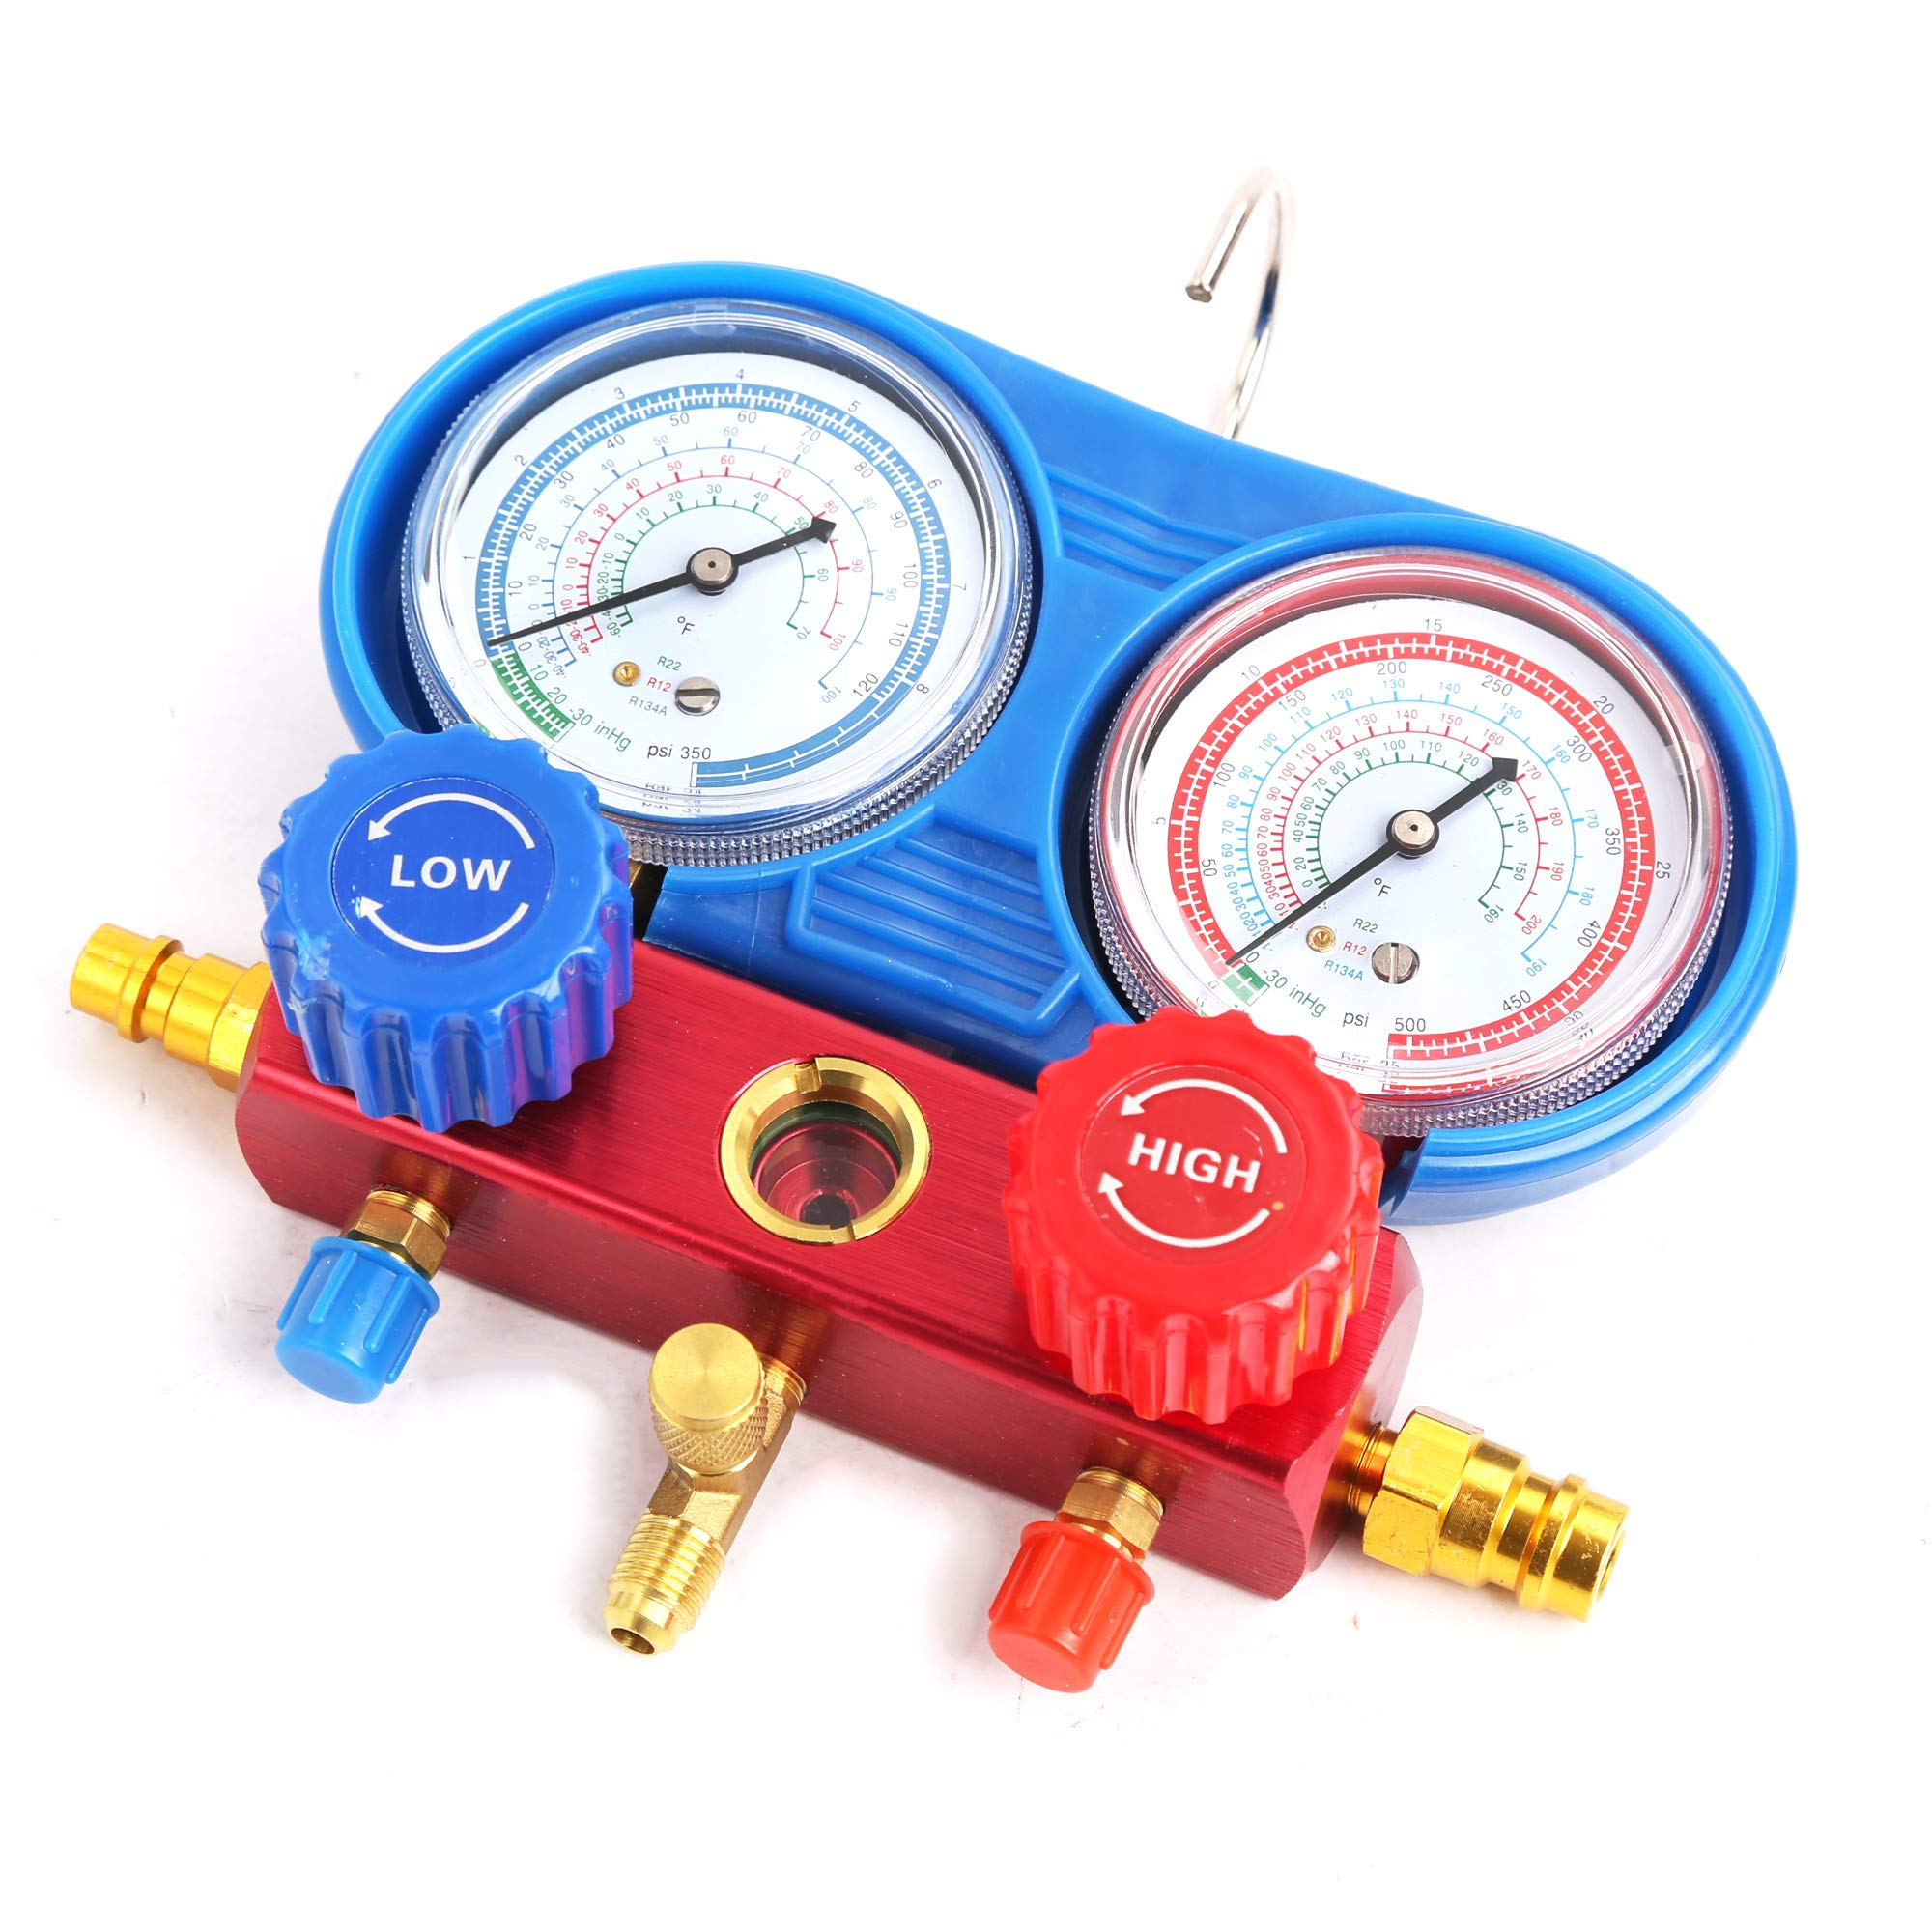 WIN.MAX Professional A/C Air Conditioner Refrigerant Manifold Gauge Kit Set R134a/R22/R12 HVAC + KapscoMoto Keychain by WIN.MAX (Image #5)